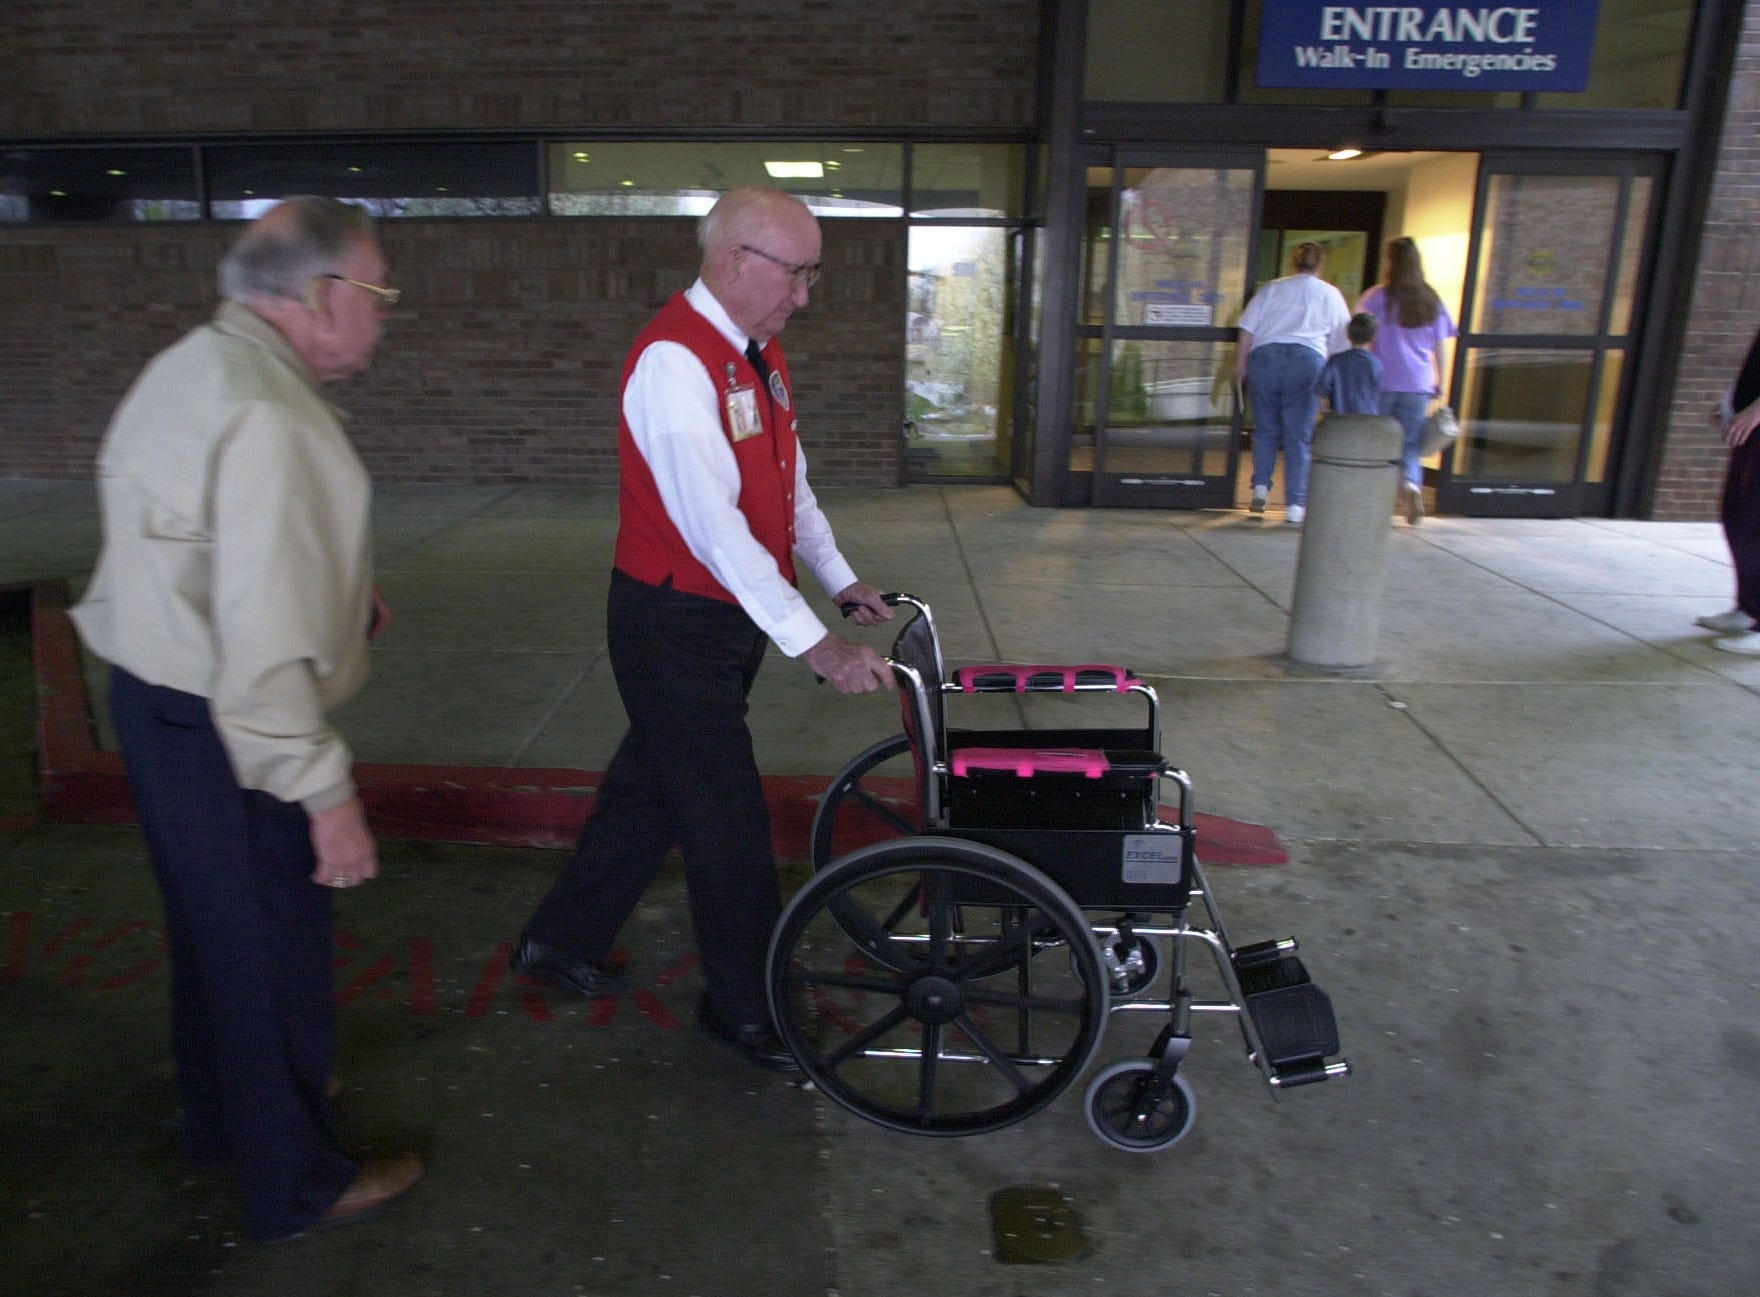 Otey Jones pushes an empty wheelchair back into the emergency room so nurses and paramedics could concentrate on the patient. Eighty-seven-year-old Jones has volunteered over 46,000 hours during the last 15 years at St. Mary's.